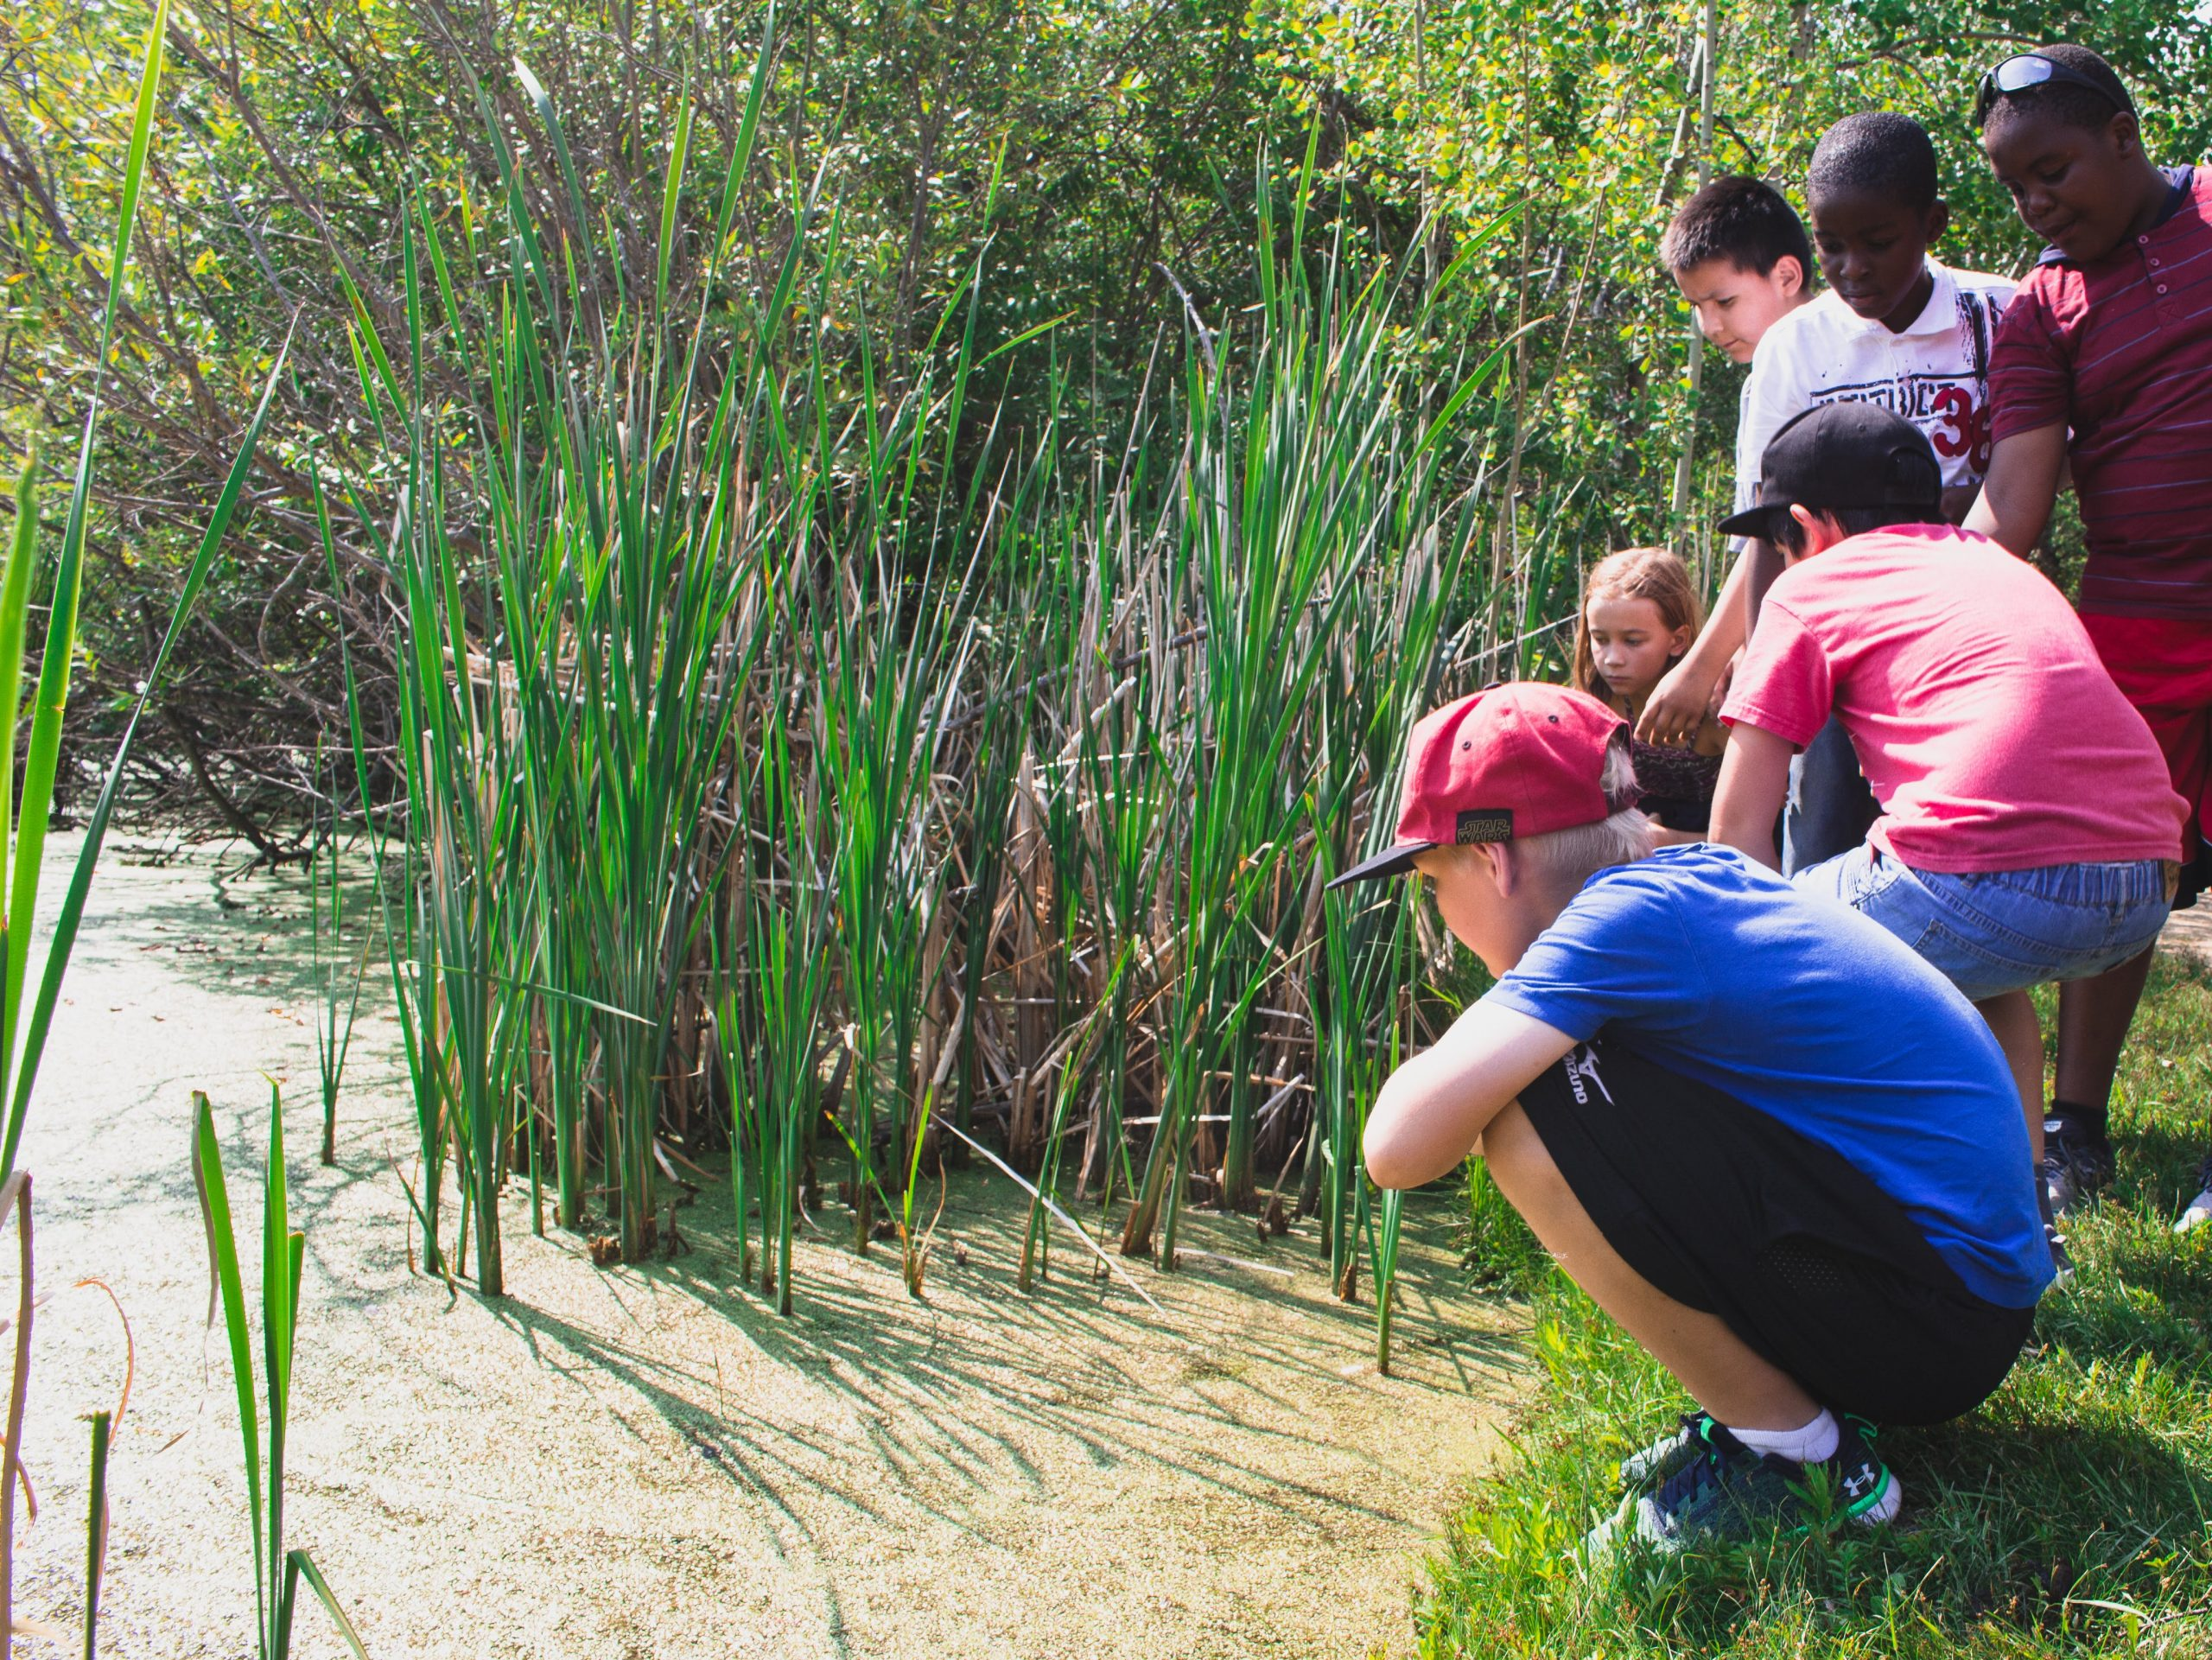 Students gather on the edge of a marsh and inspect the water.